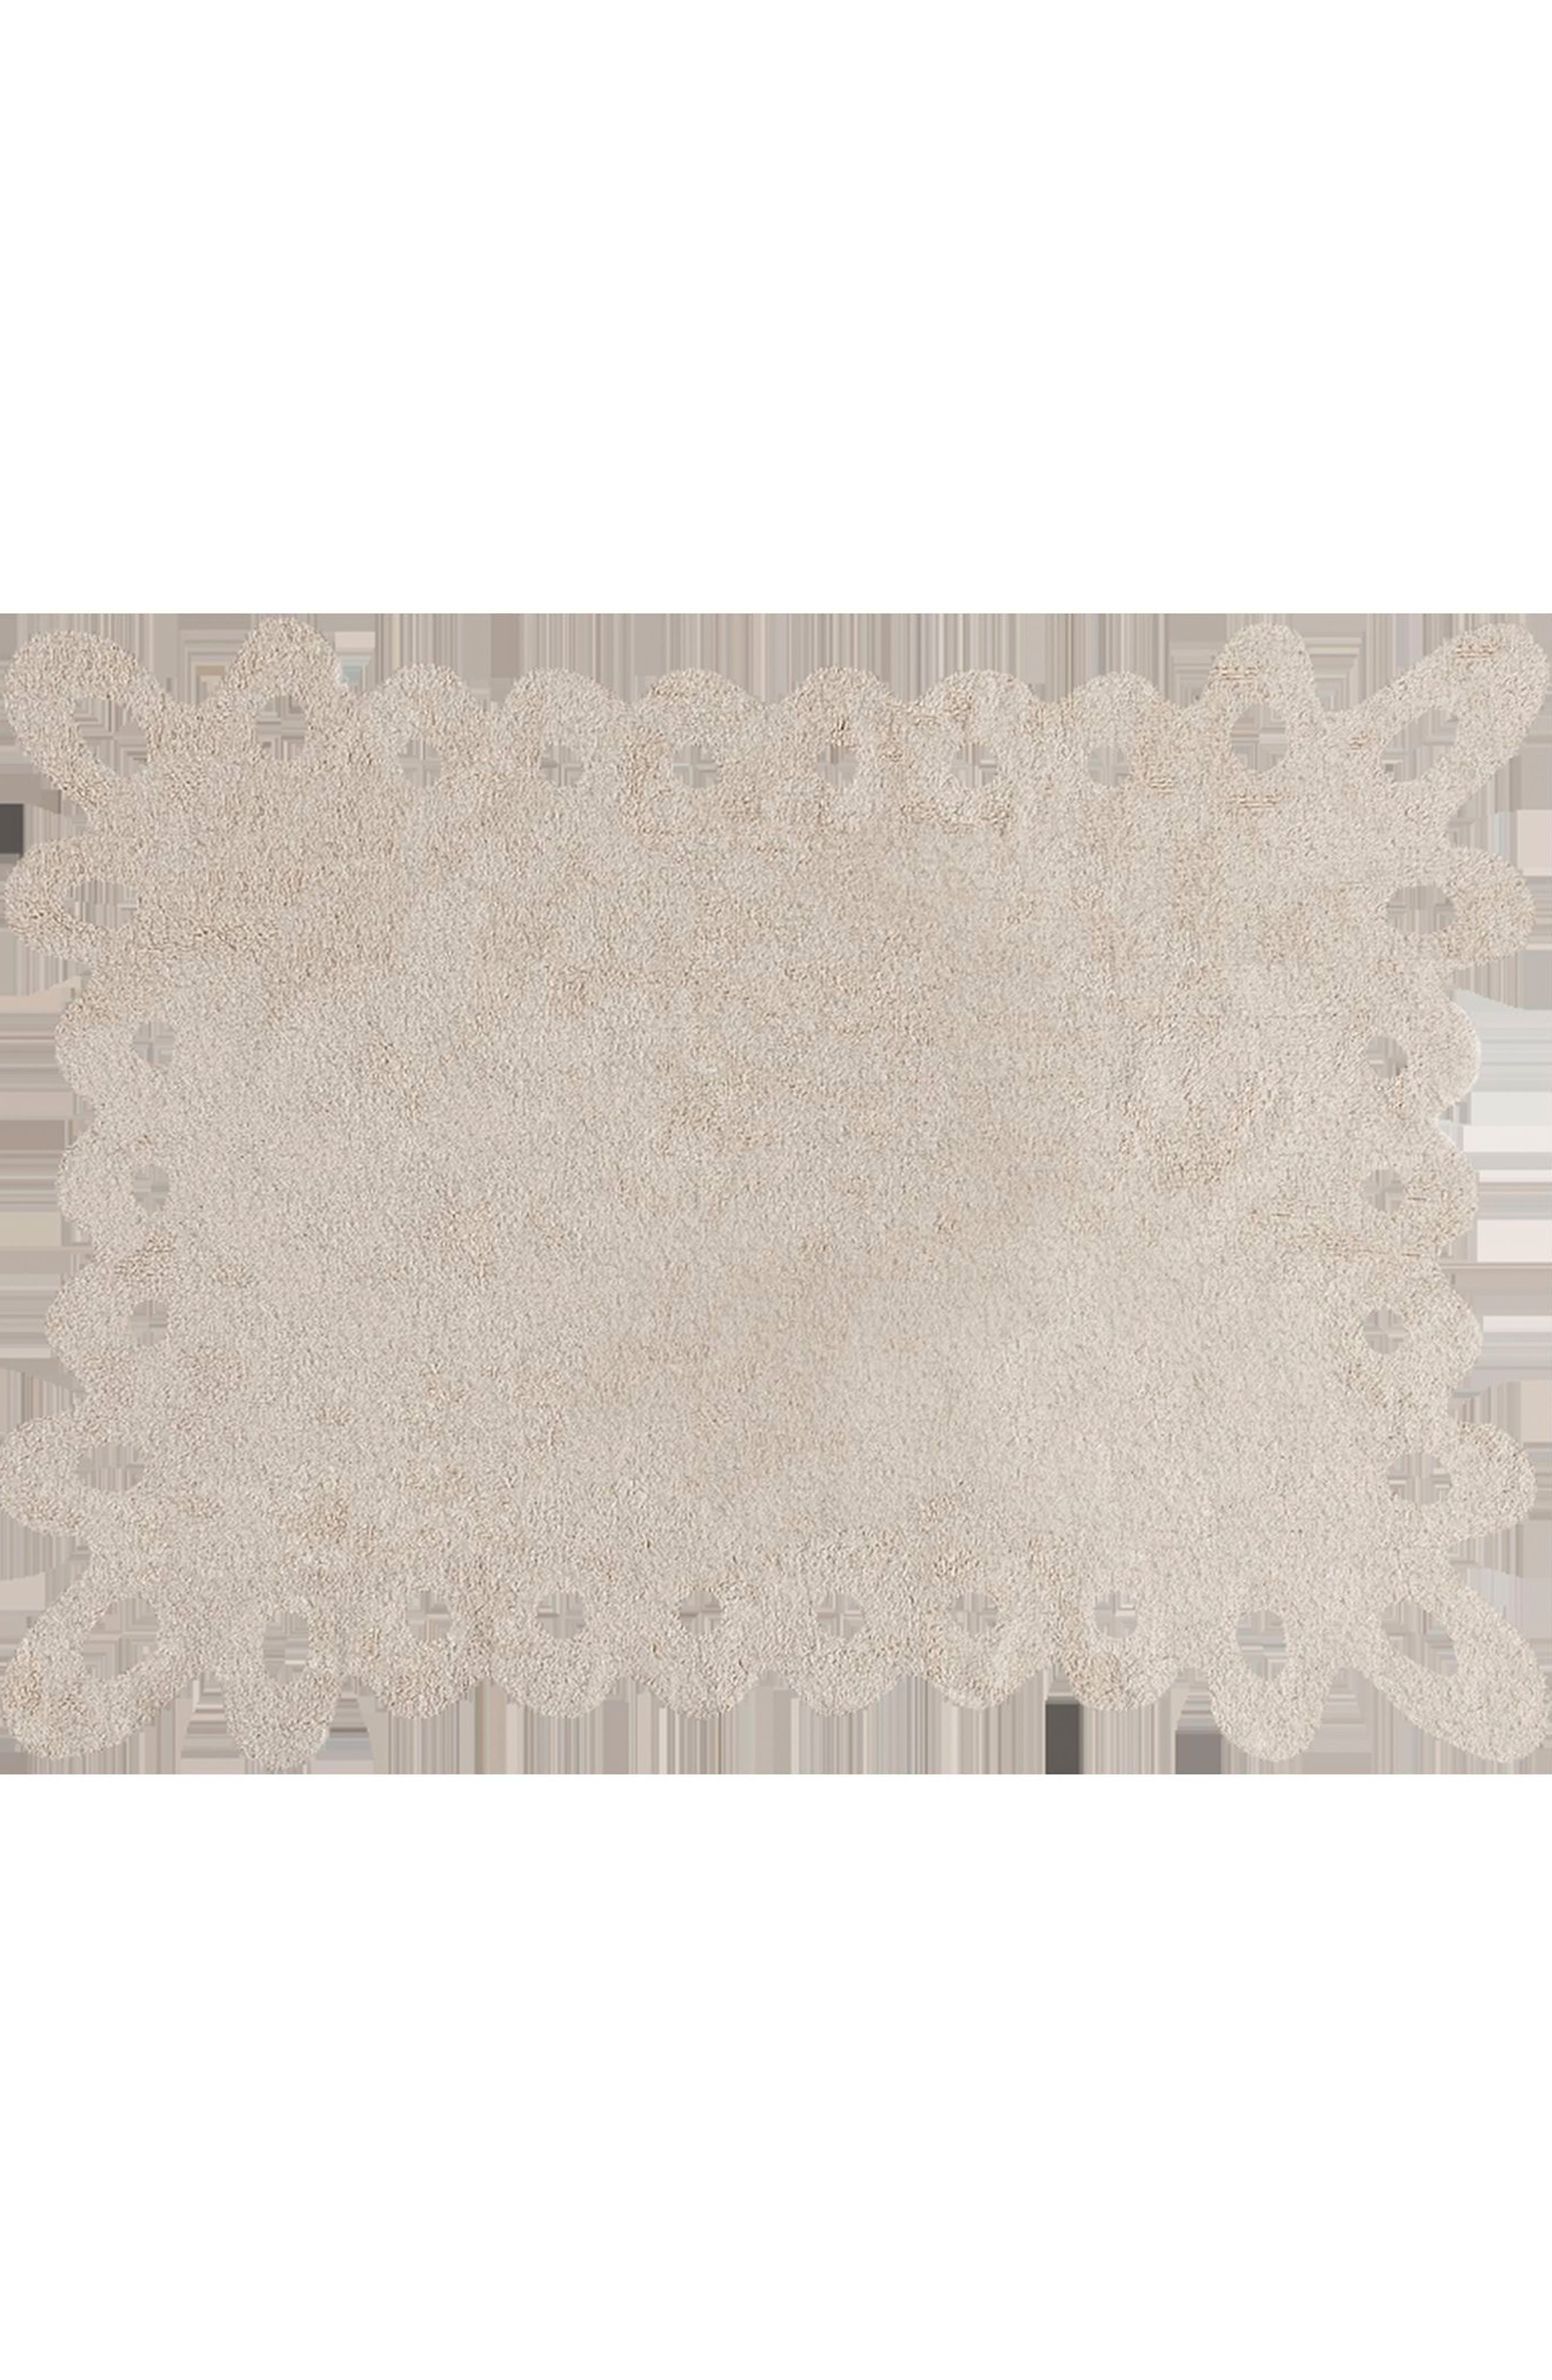 Lorena Canals Lace Rug